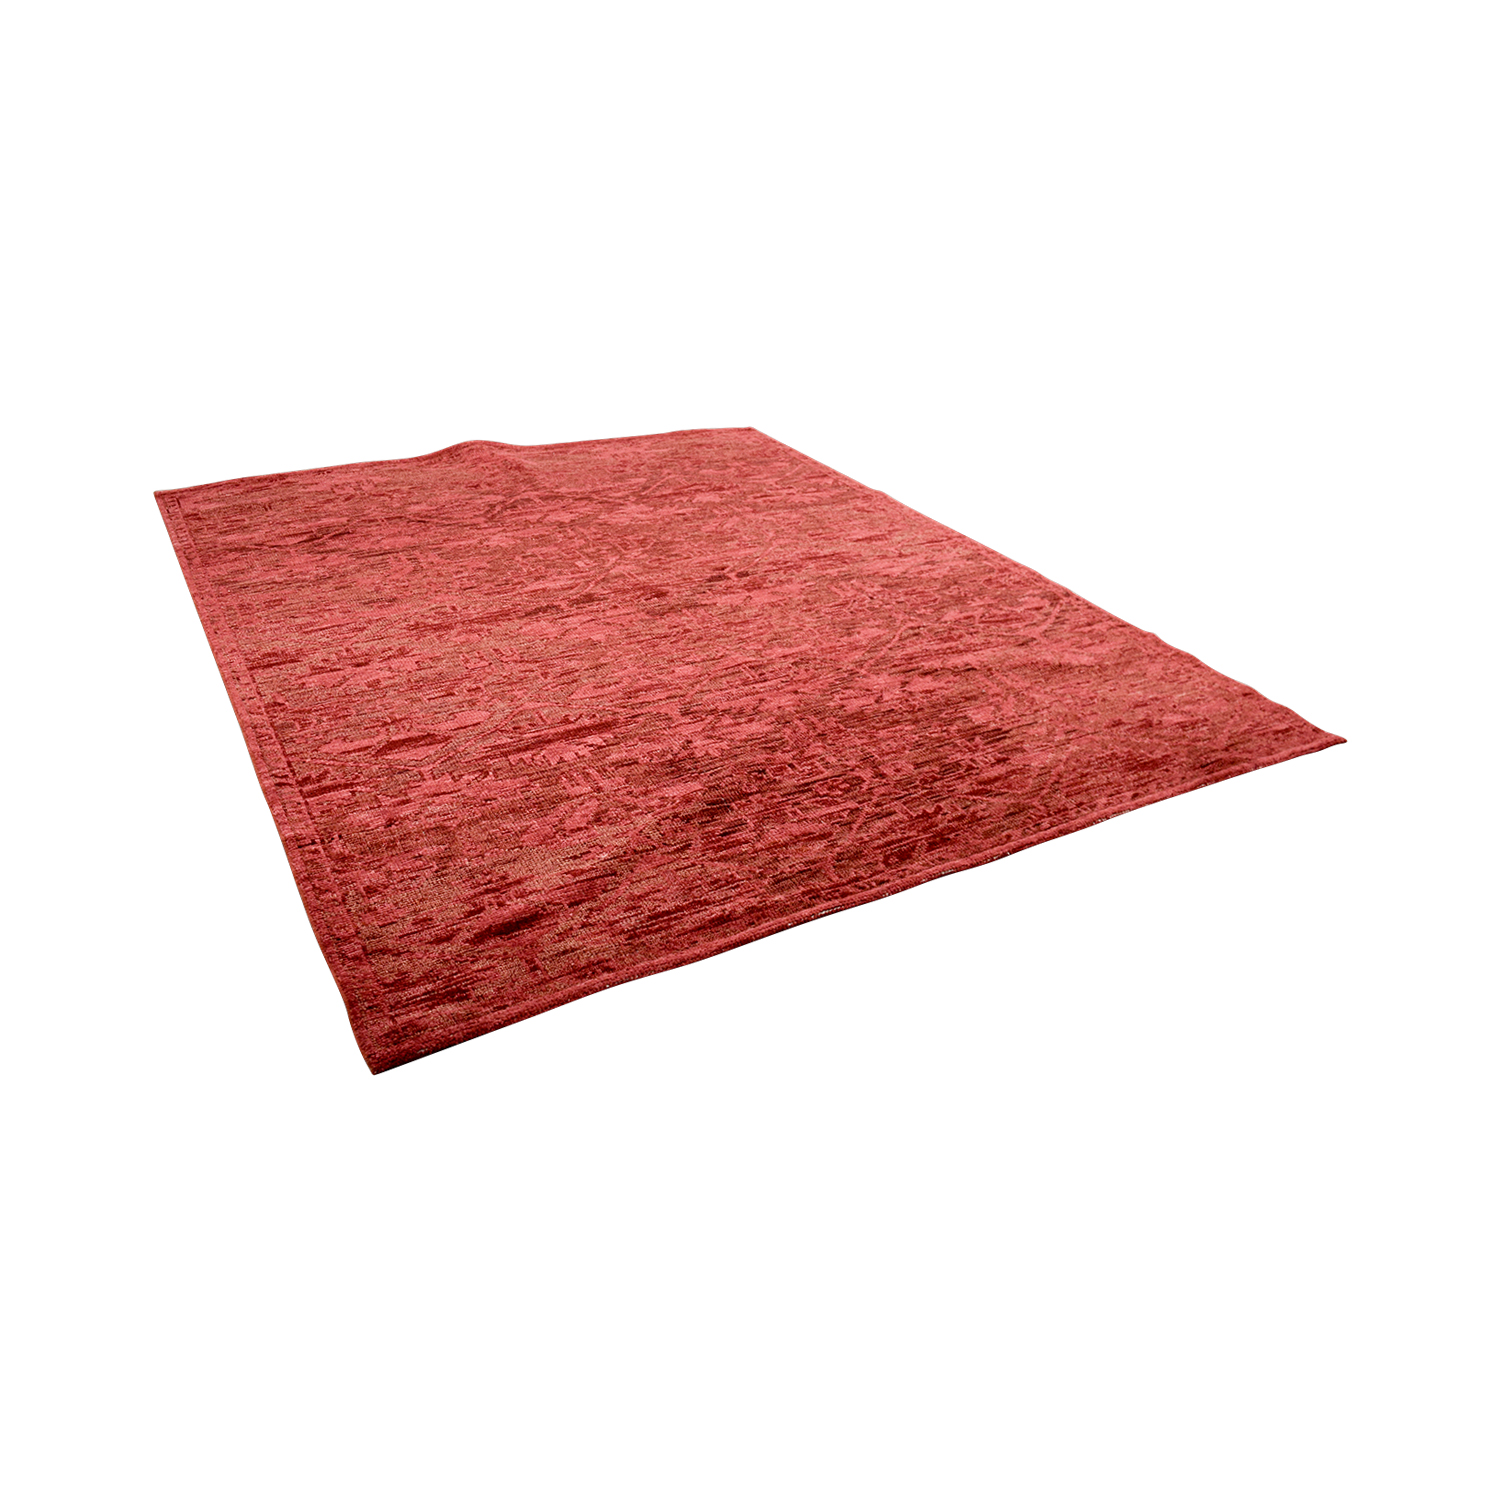 Obeetee Hand Knotted Amira Paprika Wool Rug / Decor